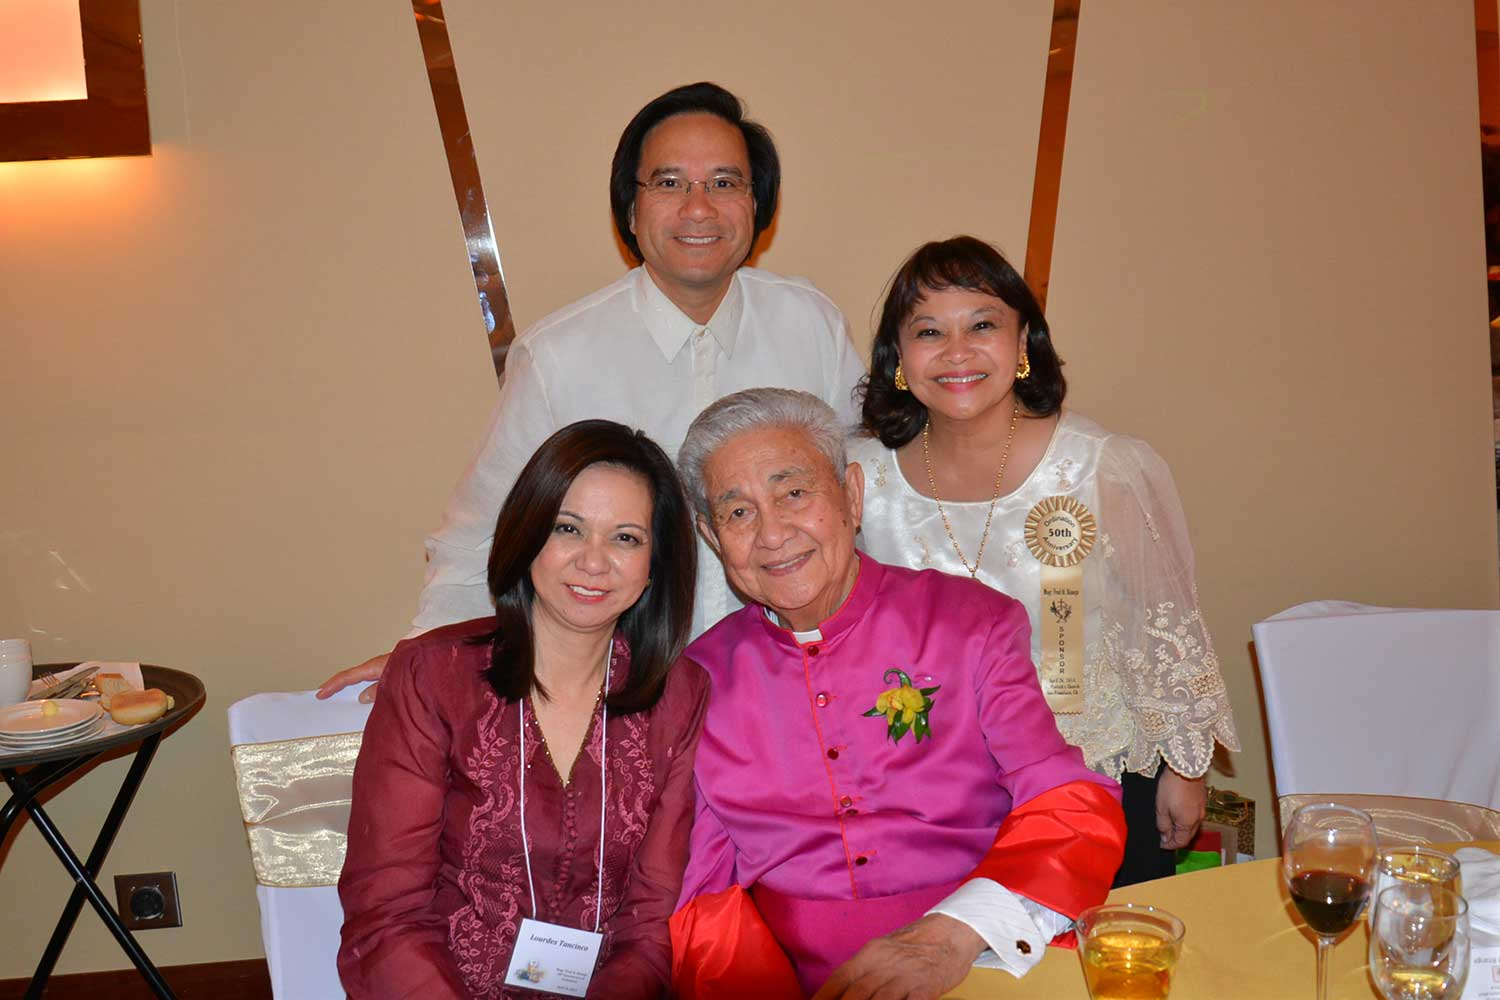 The author with Monsignor Fred Al Bitanga on his 50th Anniversary of his Ordination to Priesthood, April 26, 2014. With Tony and Bernadette Sy (Photo courtesy of Lourdes Santos Tancinco)